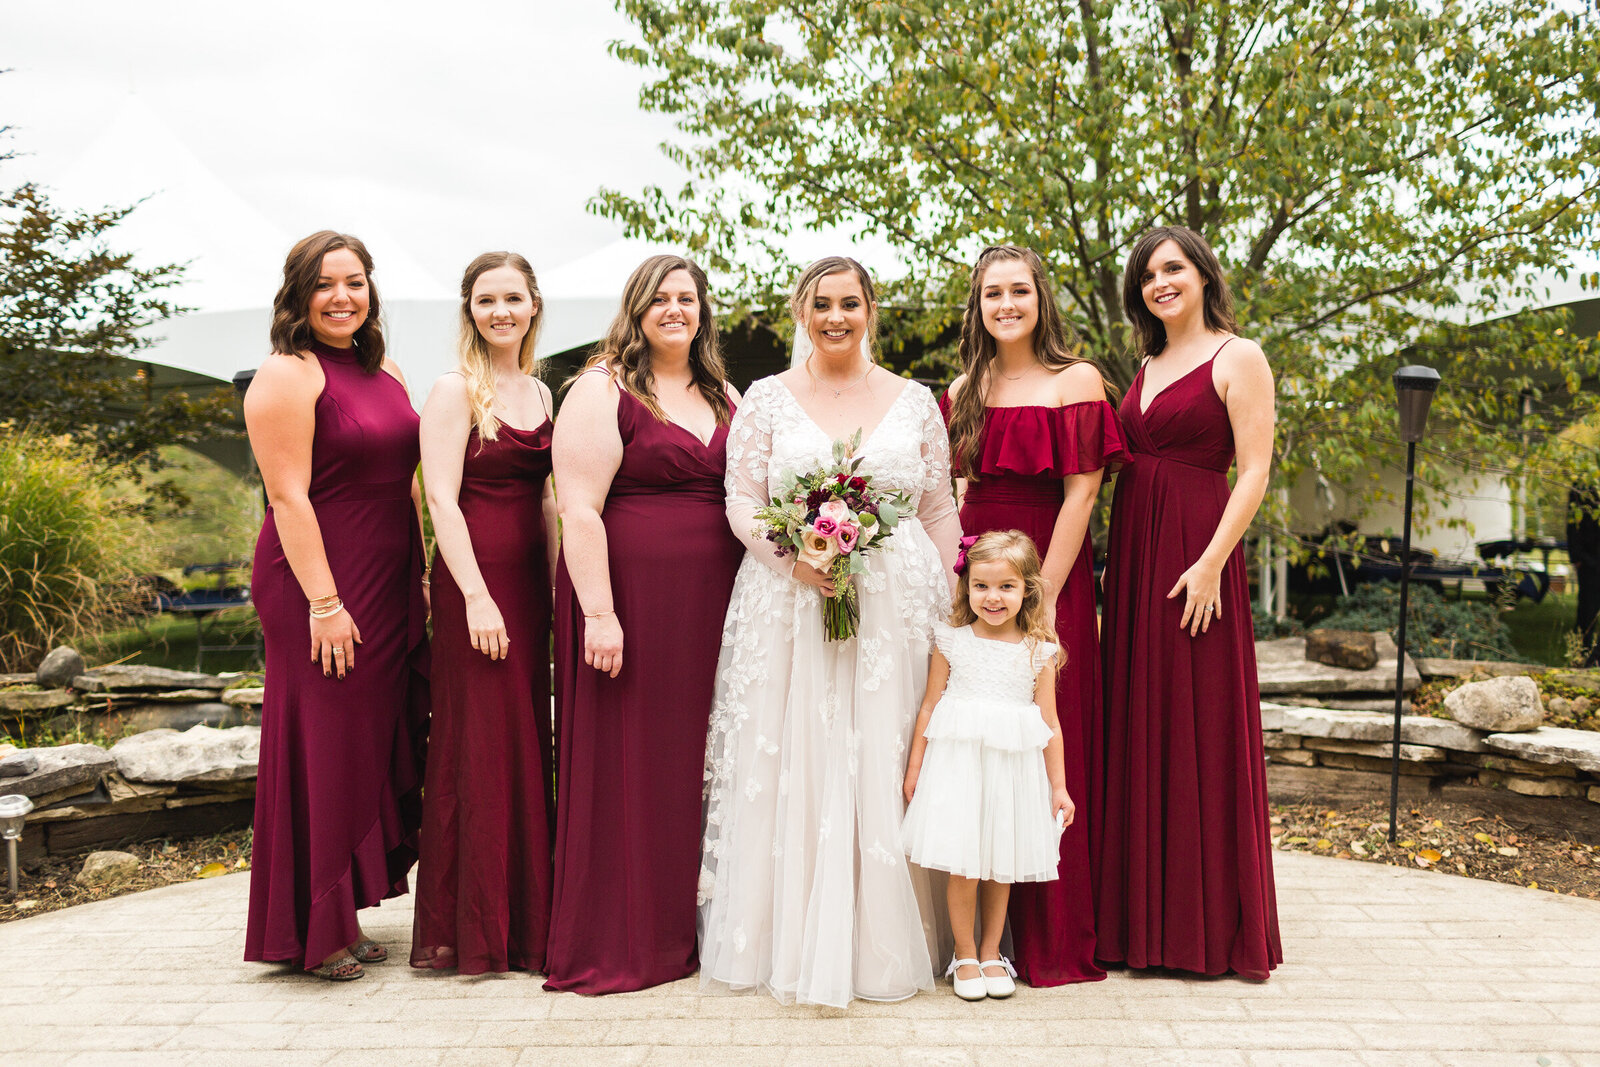 bridal party smiling for portrait at rustic wedding with burgandy dresses ohio